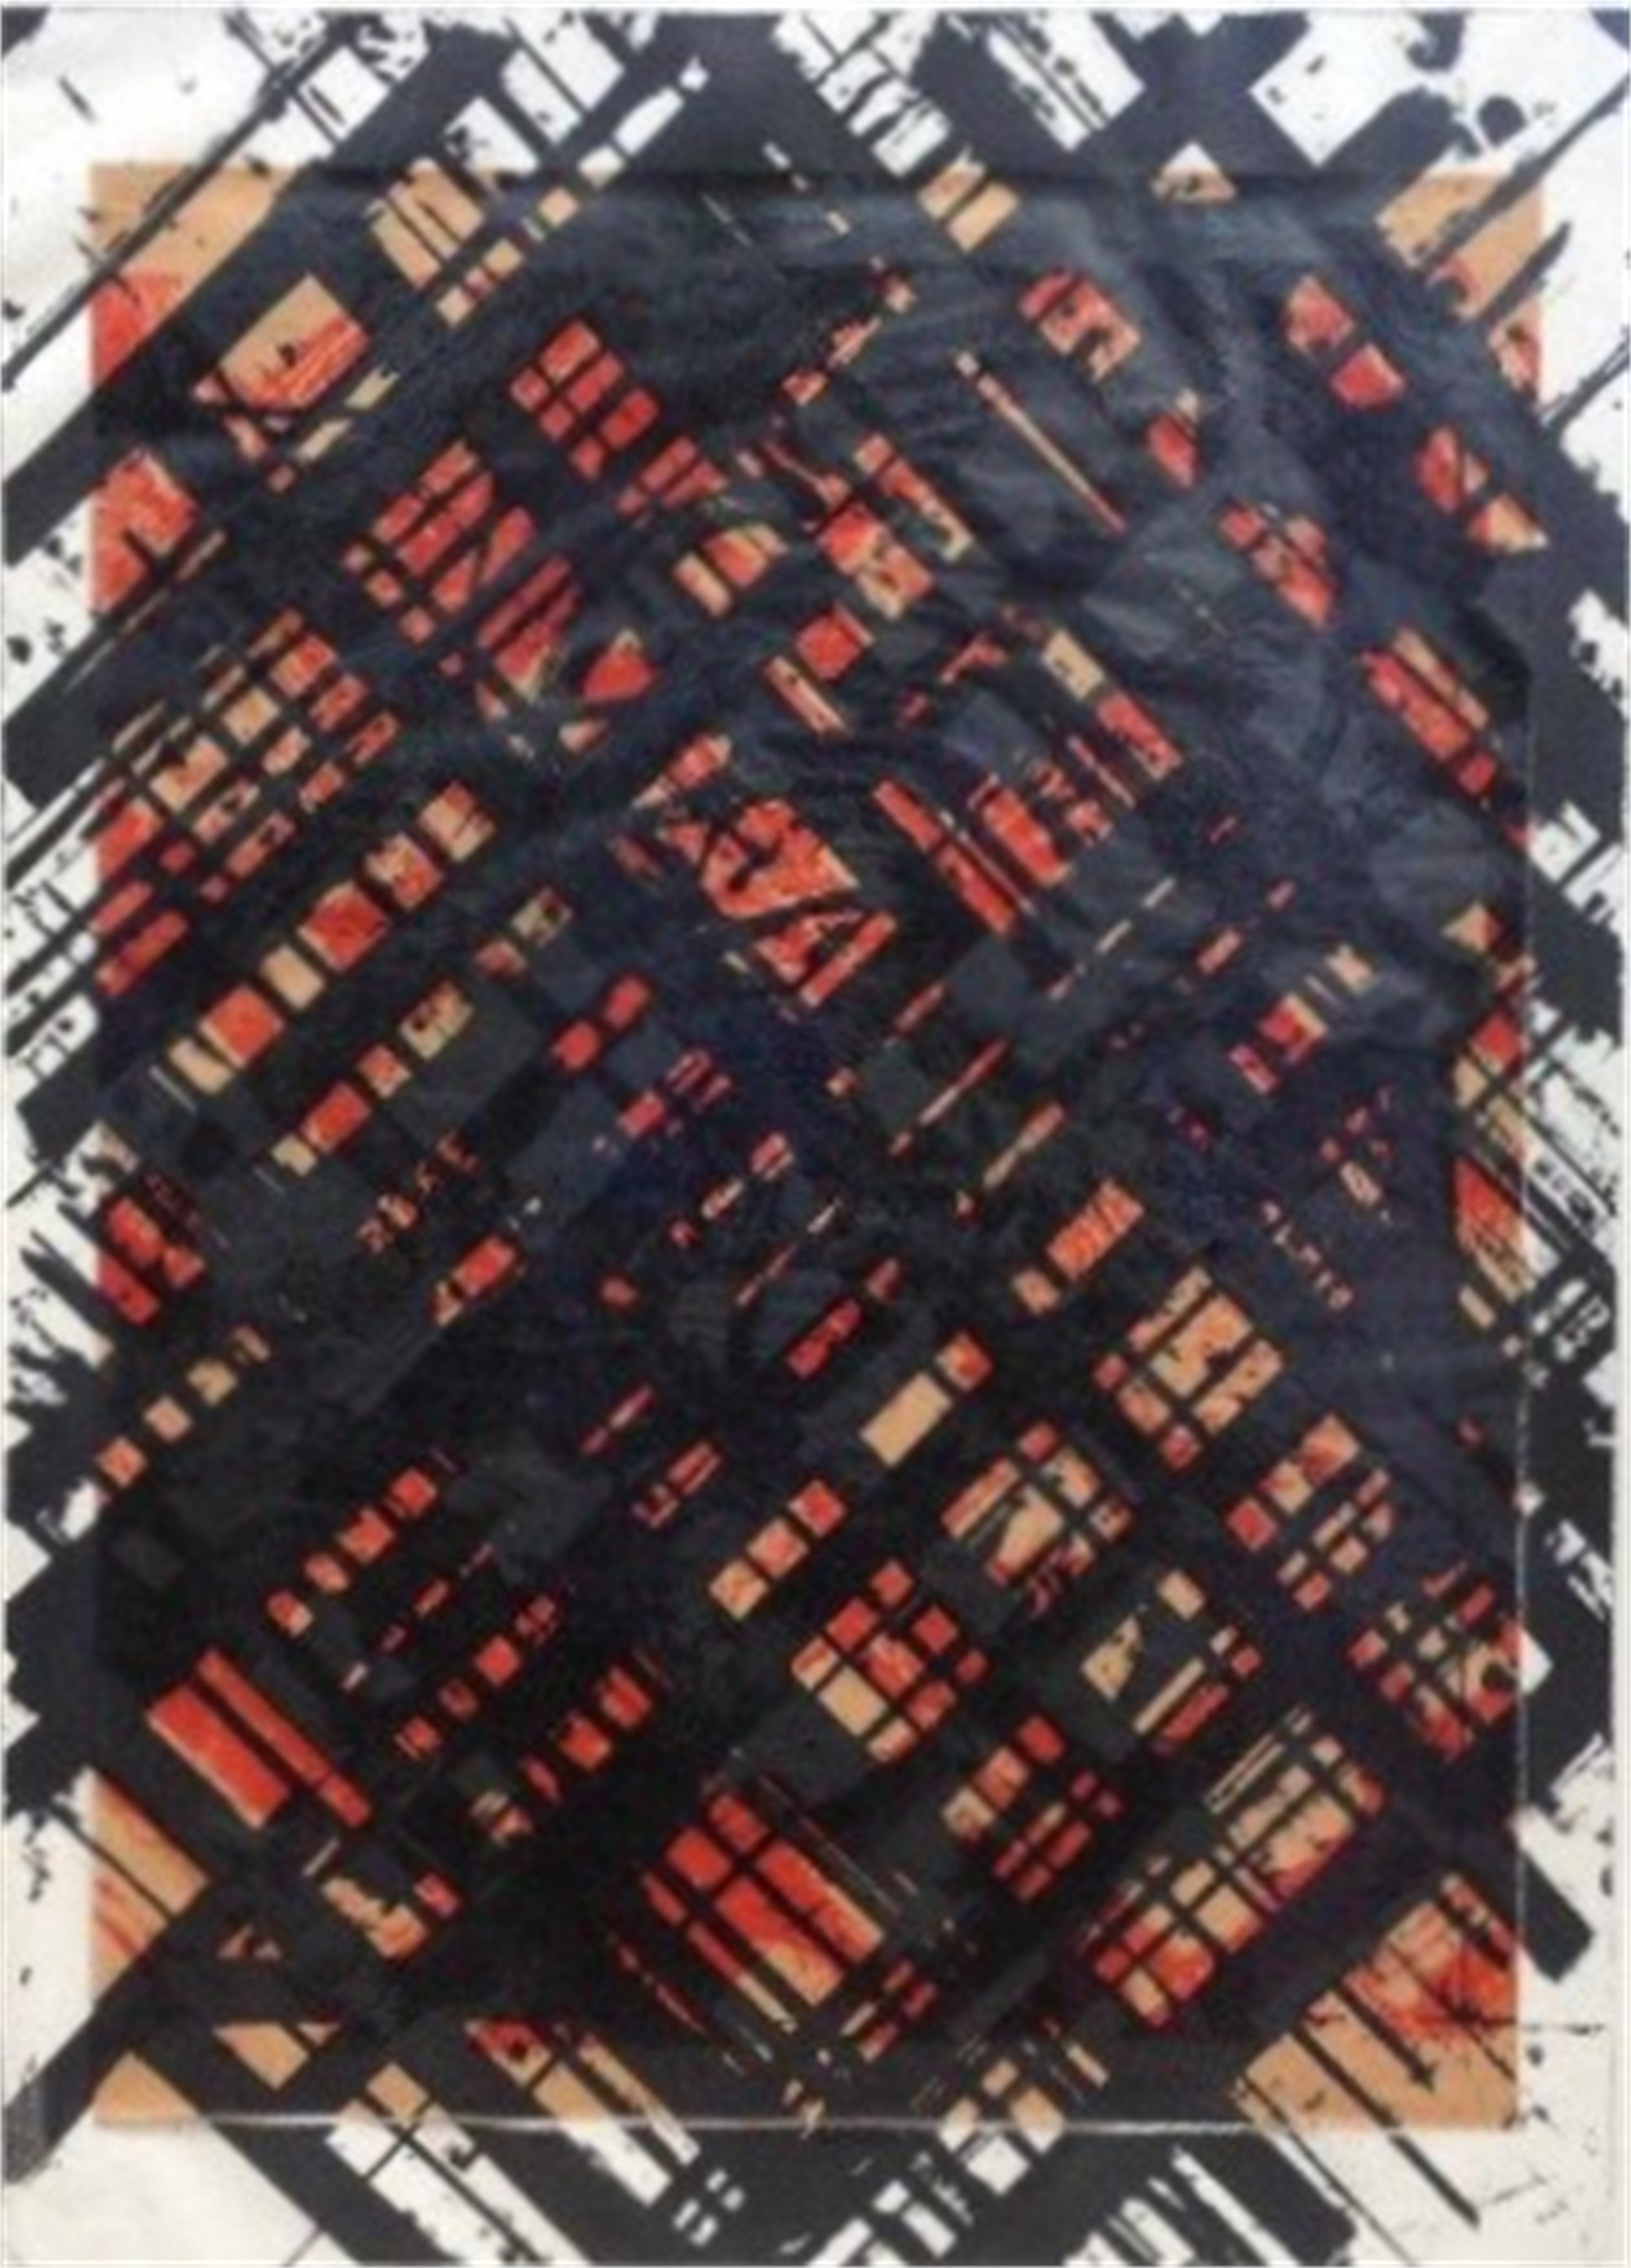 Untitled (with collage) by Ed Moses